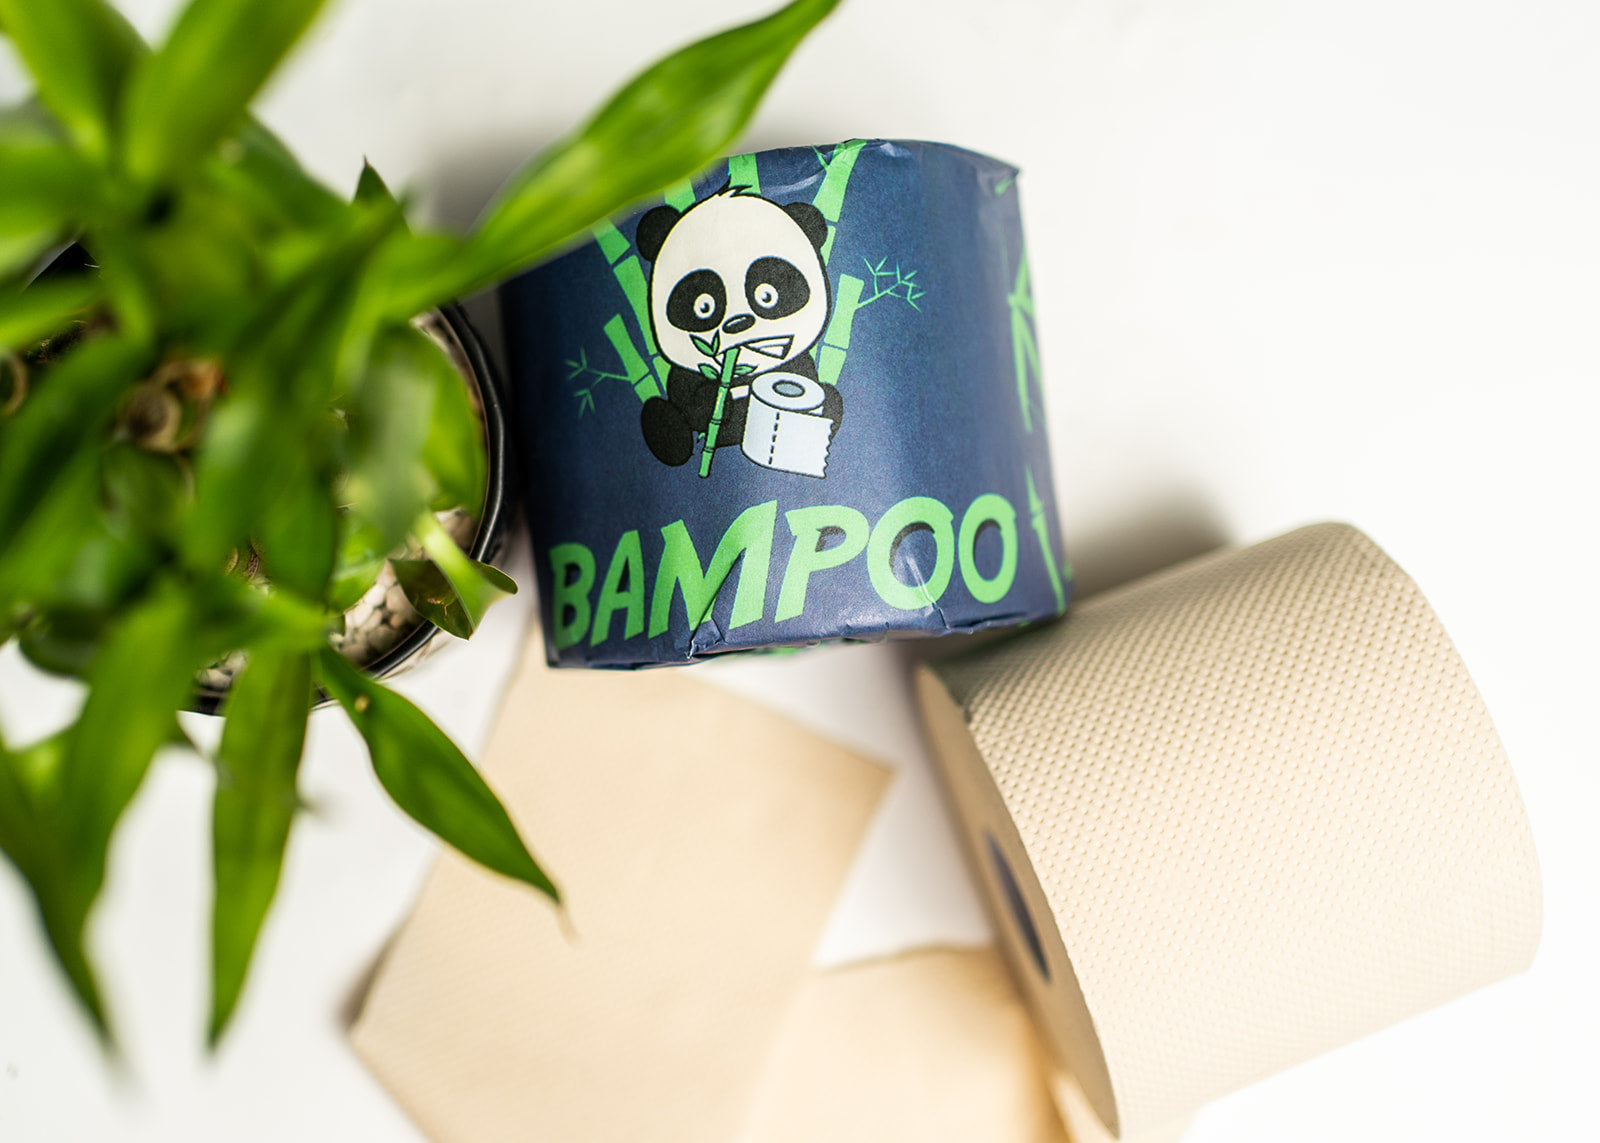 Bamboo Toilet Paper - Delivered To Your Door – Bampoo TP